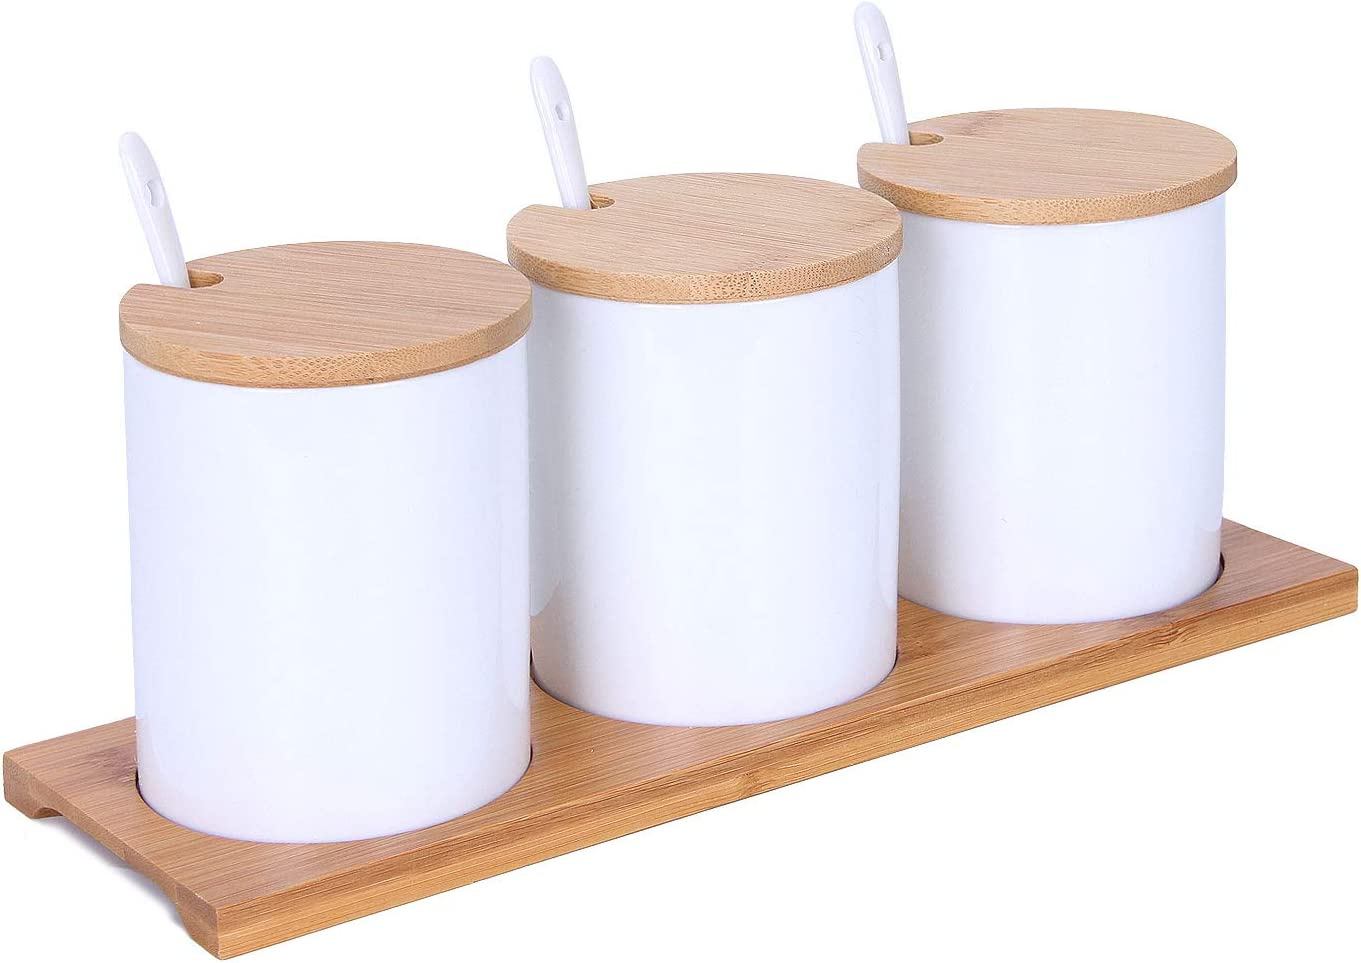 Set of 3 Porcelain Condiment Container Ceramic Spice Sugar Jars Bowl Seasoning Box Set with Ceramic Serving Spoon Wooden Tray Bamboo Cap Holder